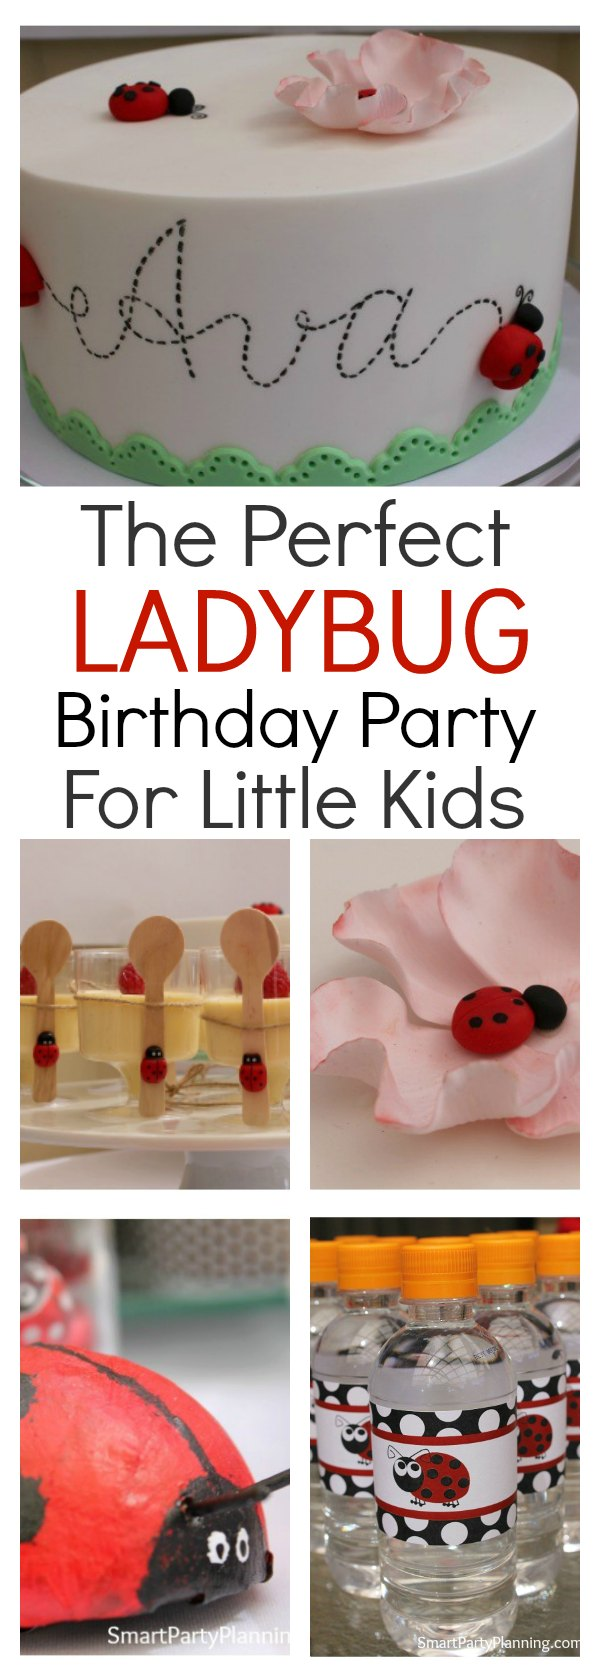 Create an easy but adorable ladybug party with just a few simple decorations, and easy food.  This is a theme that all little kids will love, with it's bright red color tones. Set up as a garden party and enjoy the earthy details.